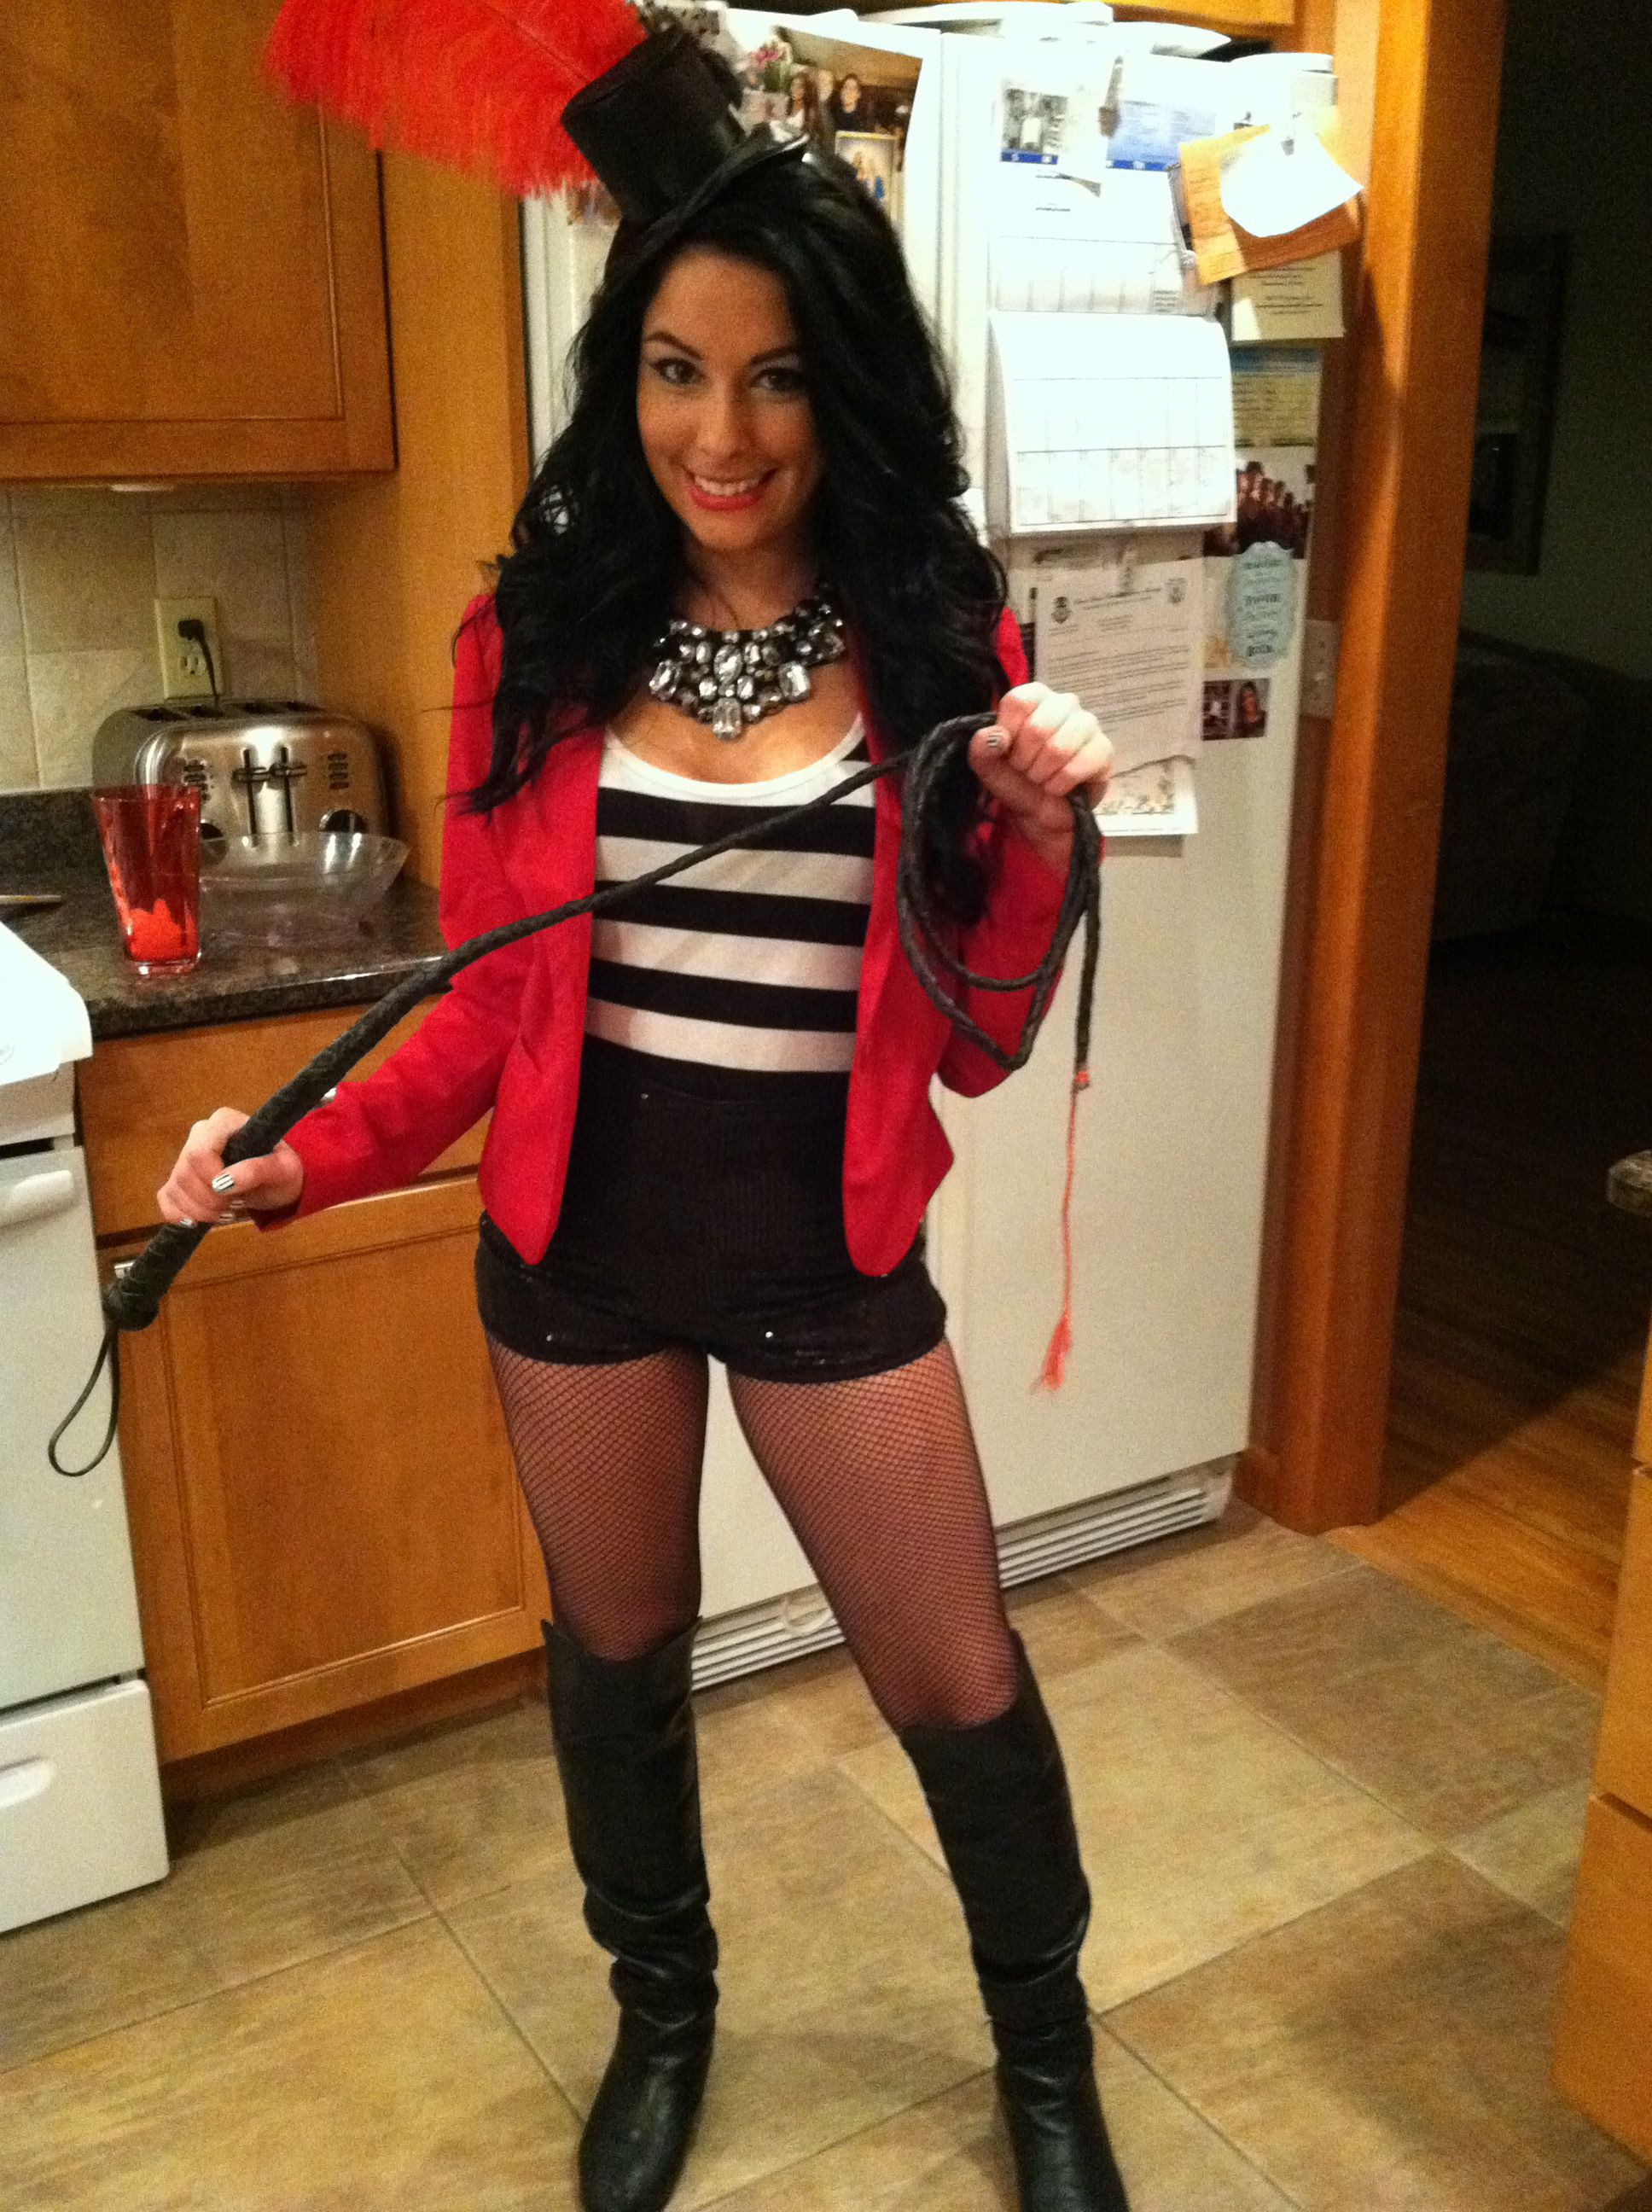 Best ideas about Circus Costumes DIY . Save or Pin Halloween 2011 Ringmaster costume ringmaster costume Now.